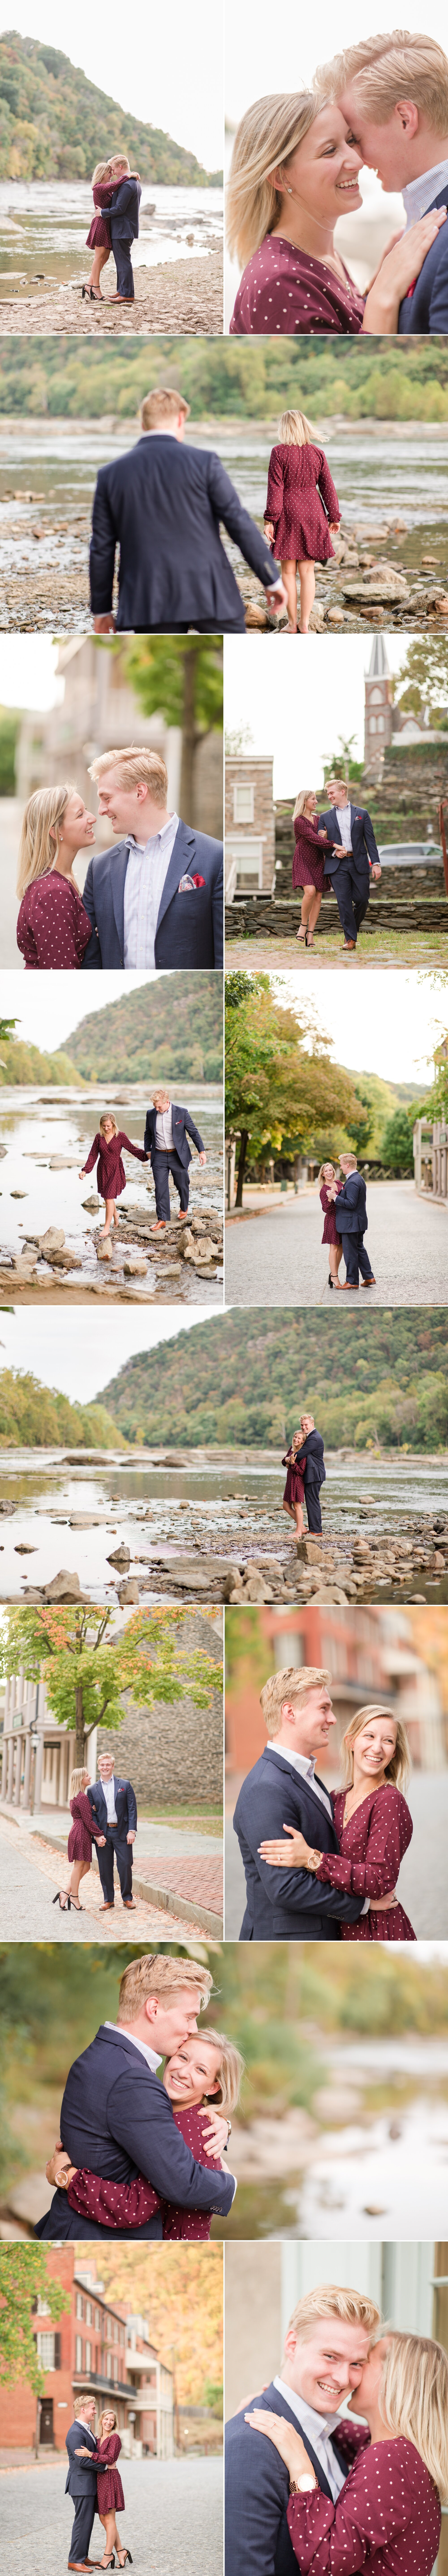 harper's ferry engagement session, fall